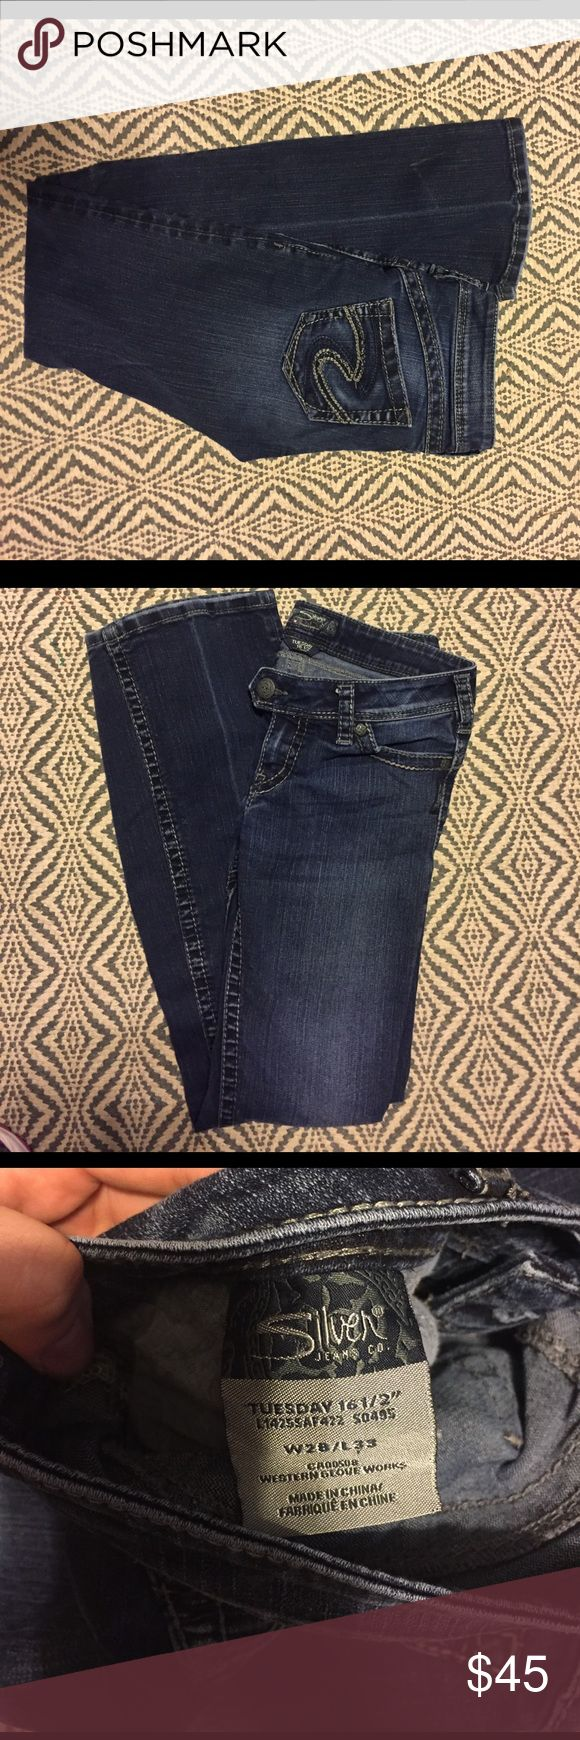 Women's Silver Dark Jeans in Tuesday Great condition W28/L33 Silver Jeans Jeans